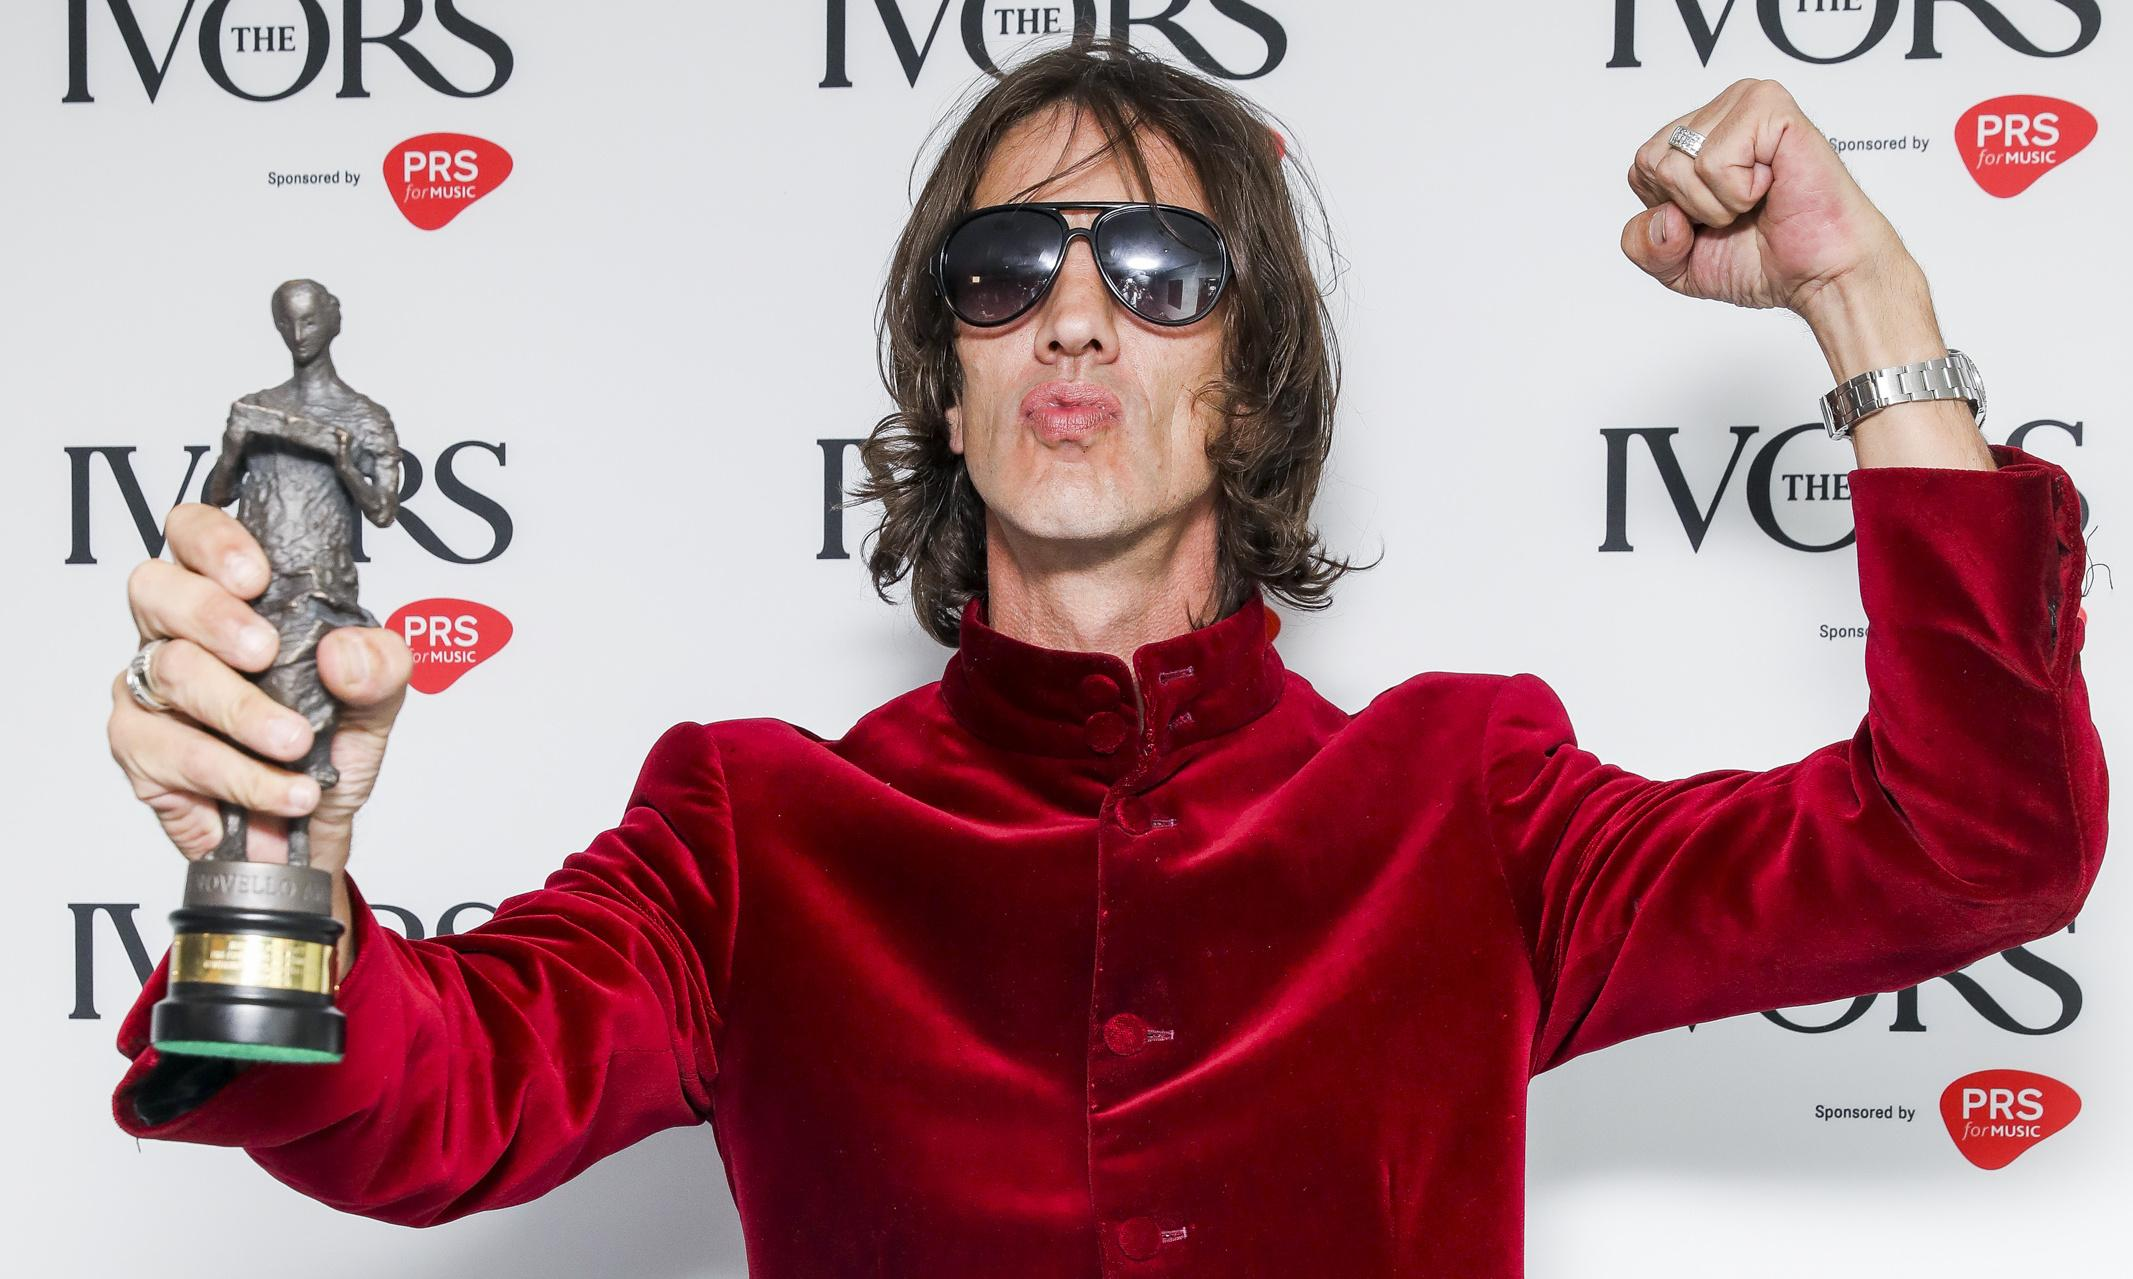 Bittersweet no more: Rolling Stones pass Verve royalties to Richard Ashcroft